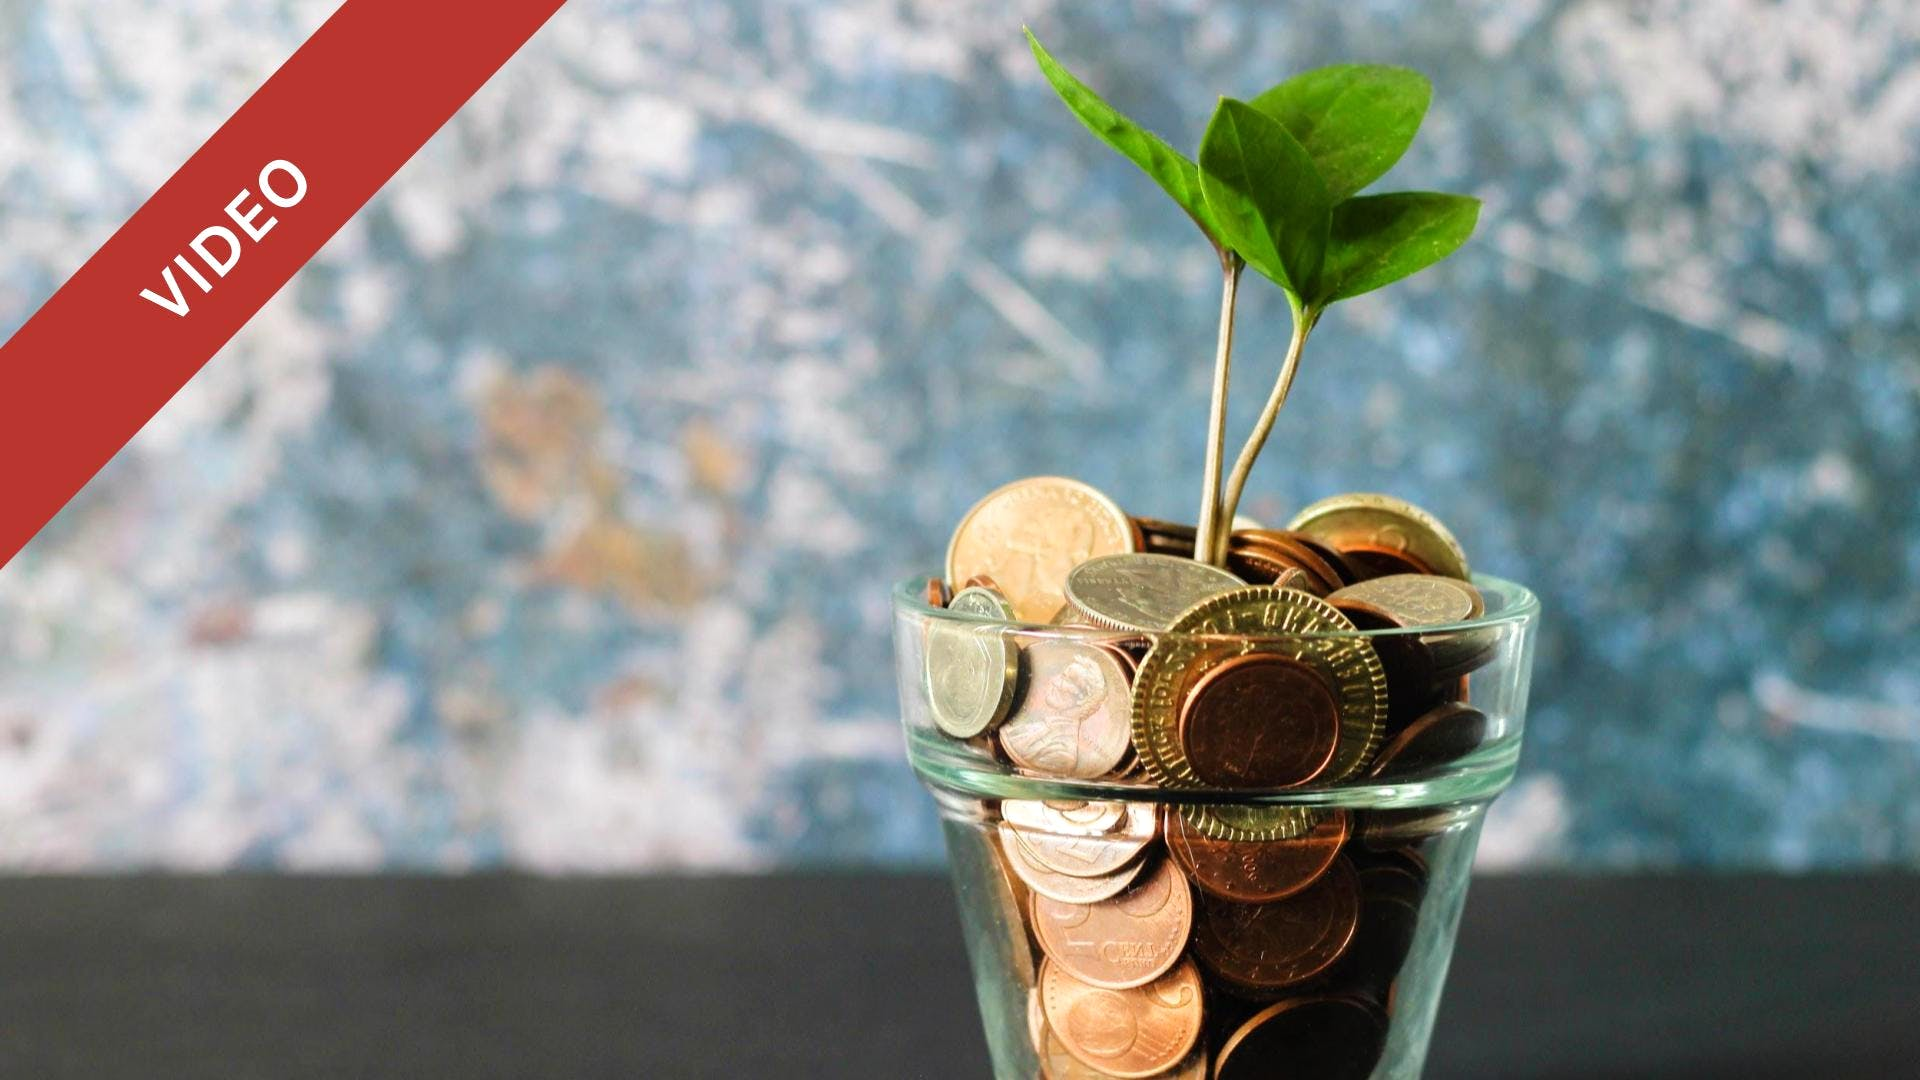 Preparing for Fundraising: How to Approach and Pitch for Your Seed Round